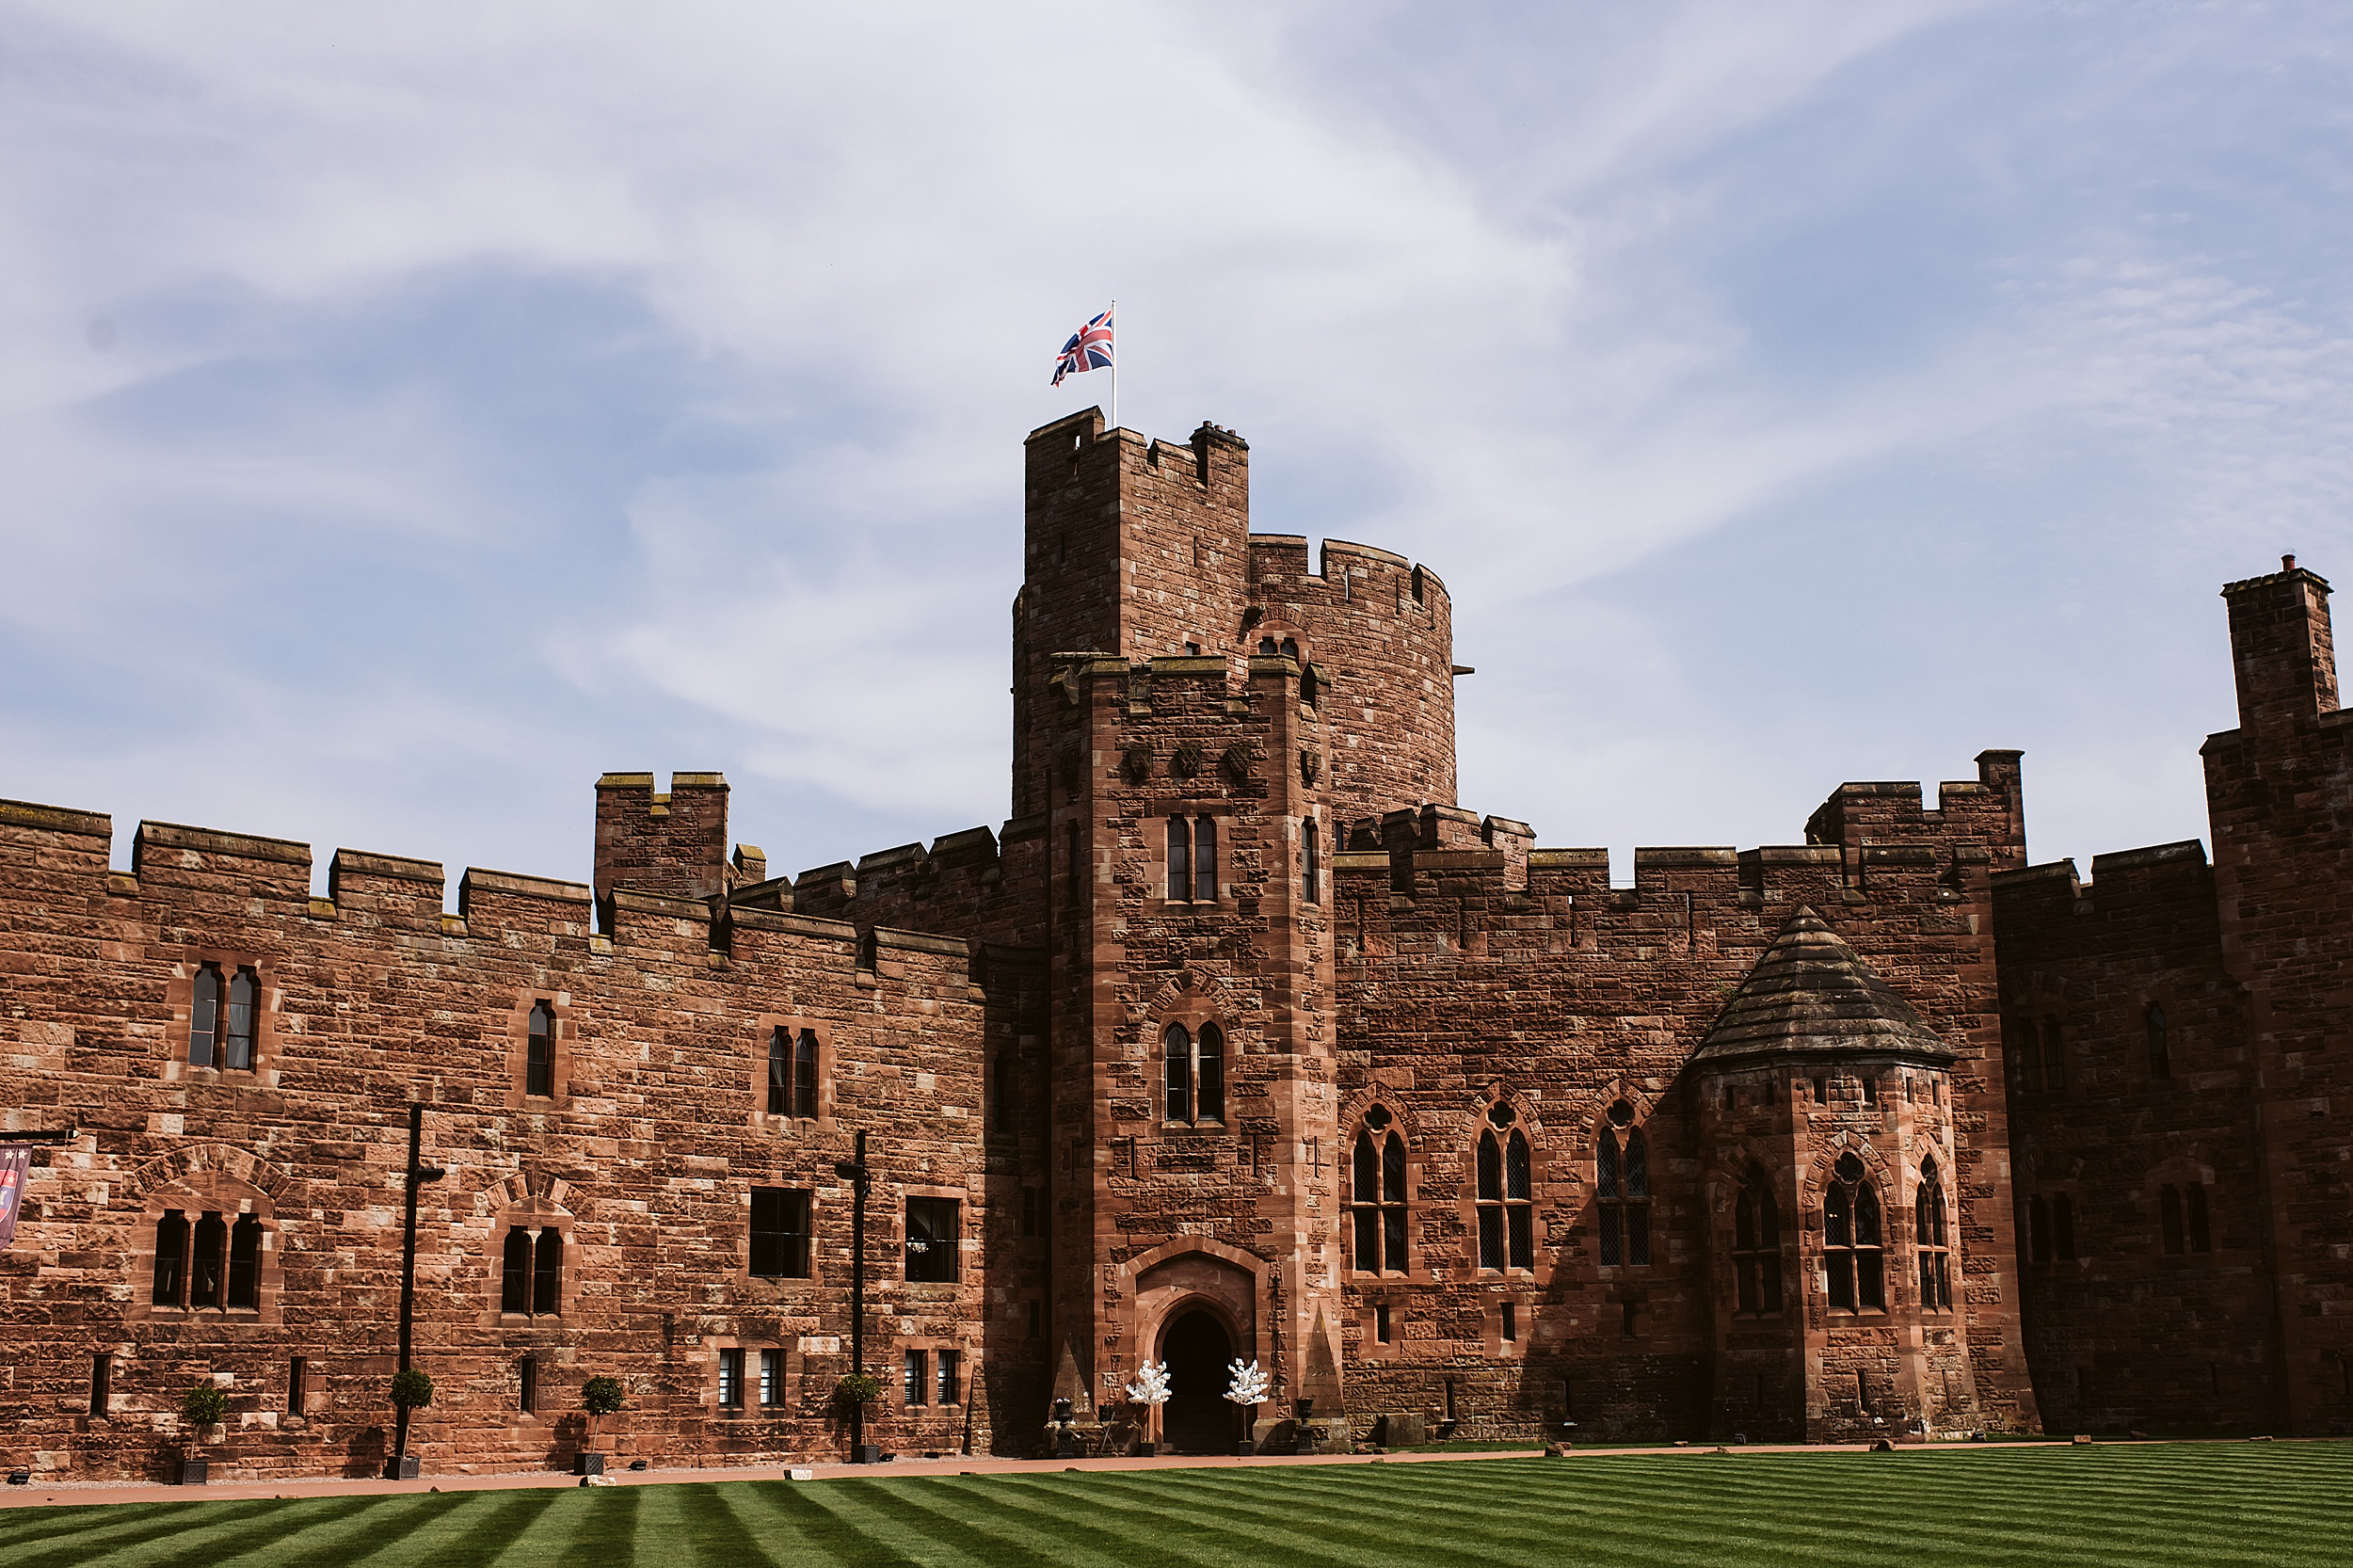 Peckforton_Castle_Cheshire_Toronto_Wedding_Photographer_UK_Destination_Wedding_0001.jpg